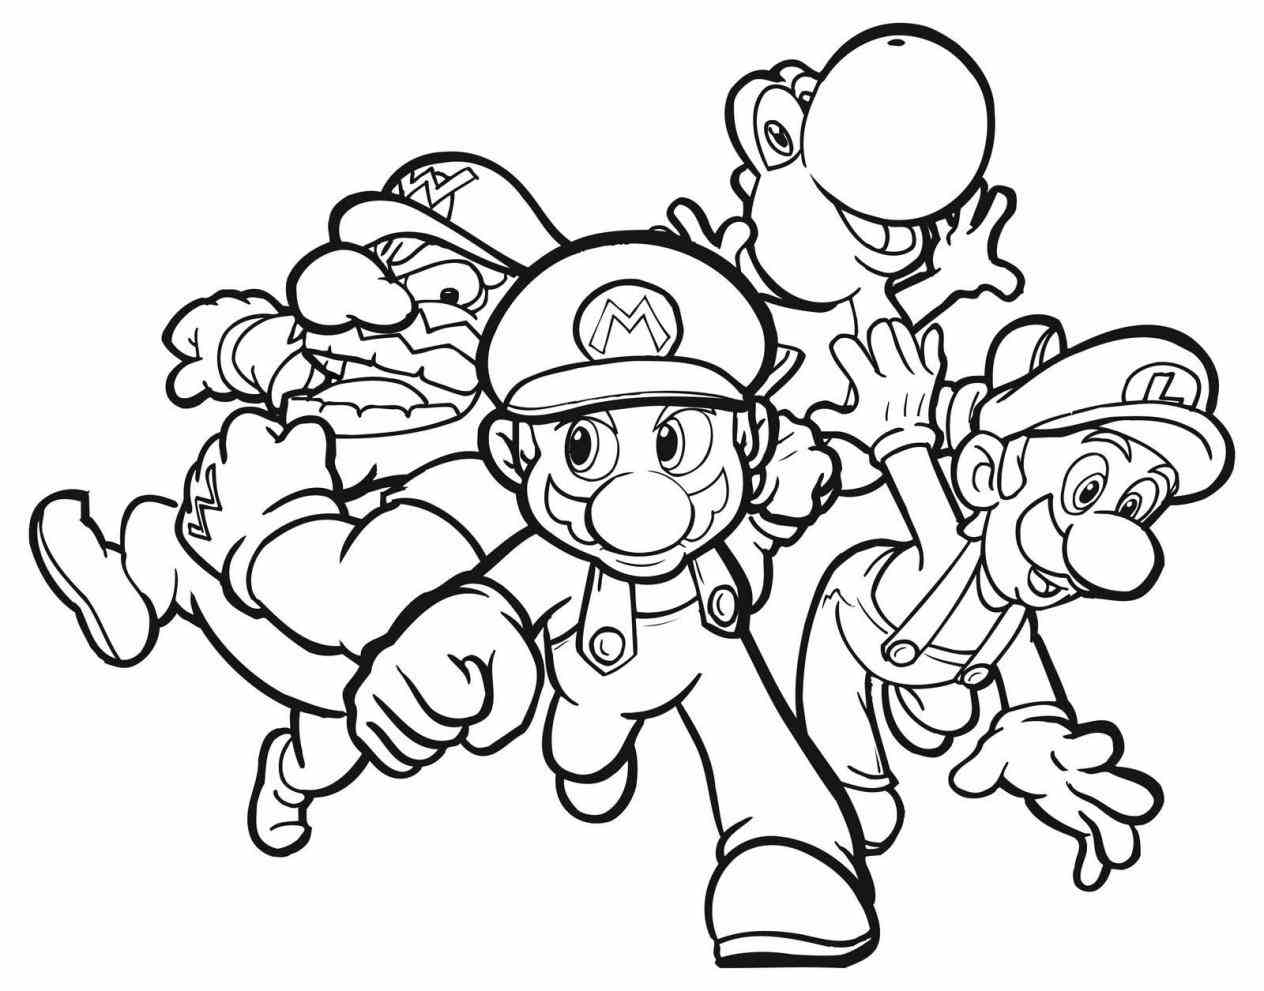 1264x991 Coloring Pages For Teens Boys Free